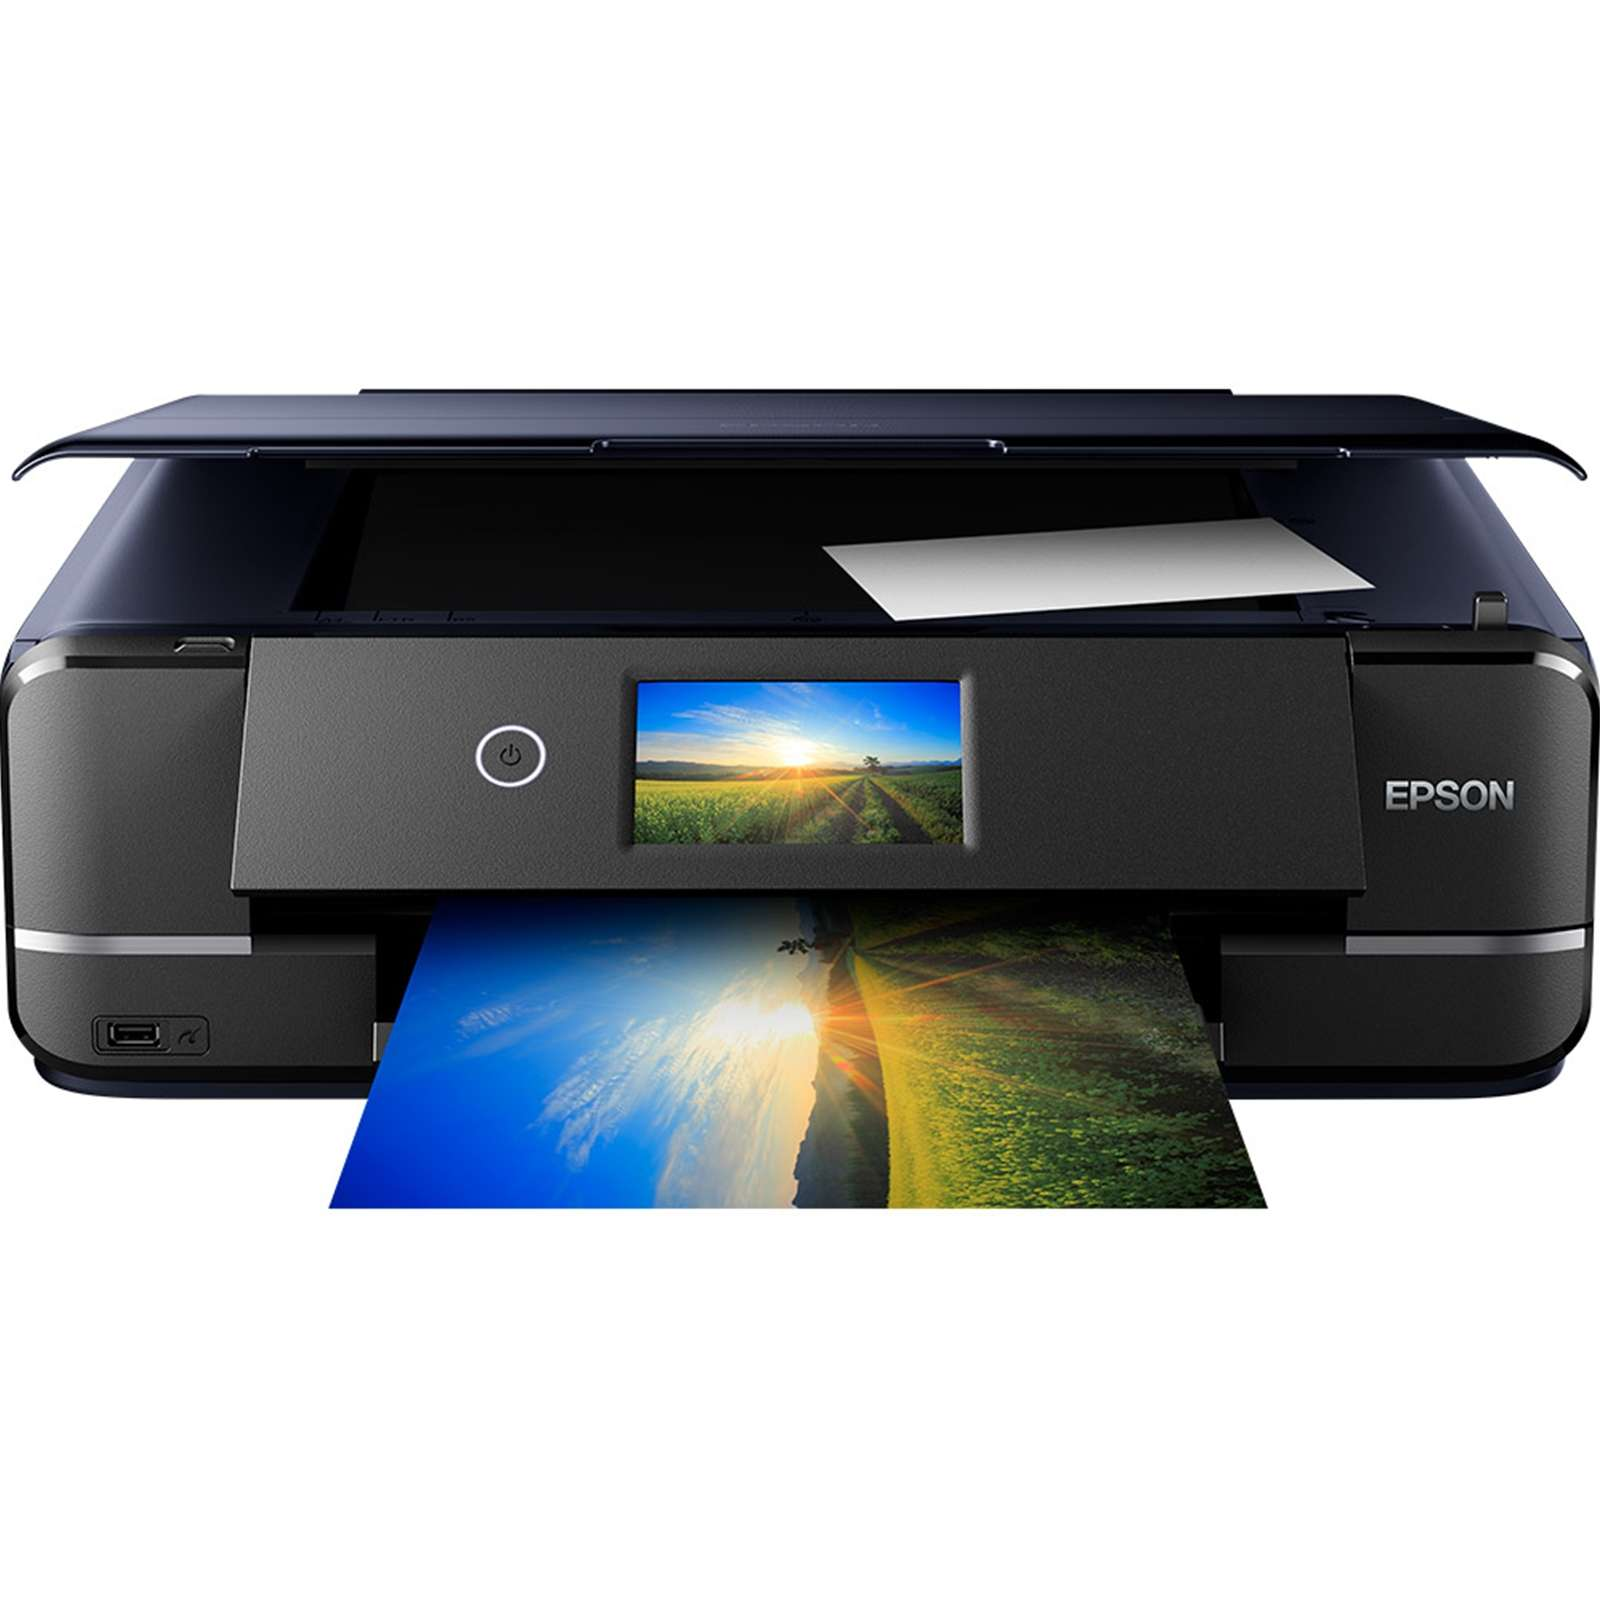 Epson Expression Photo XP-970 A3 Wireless All-in-One Colour Printer